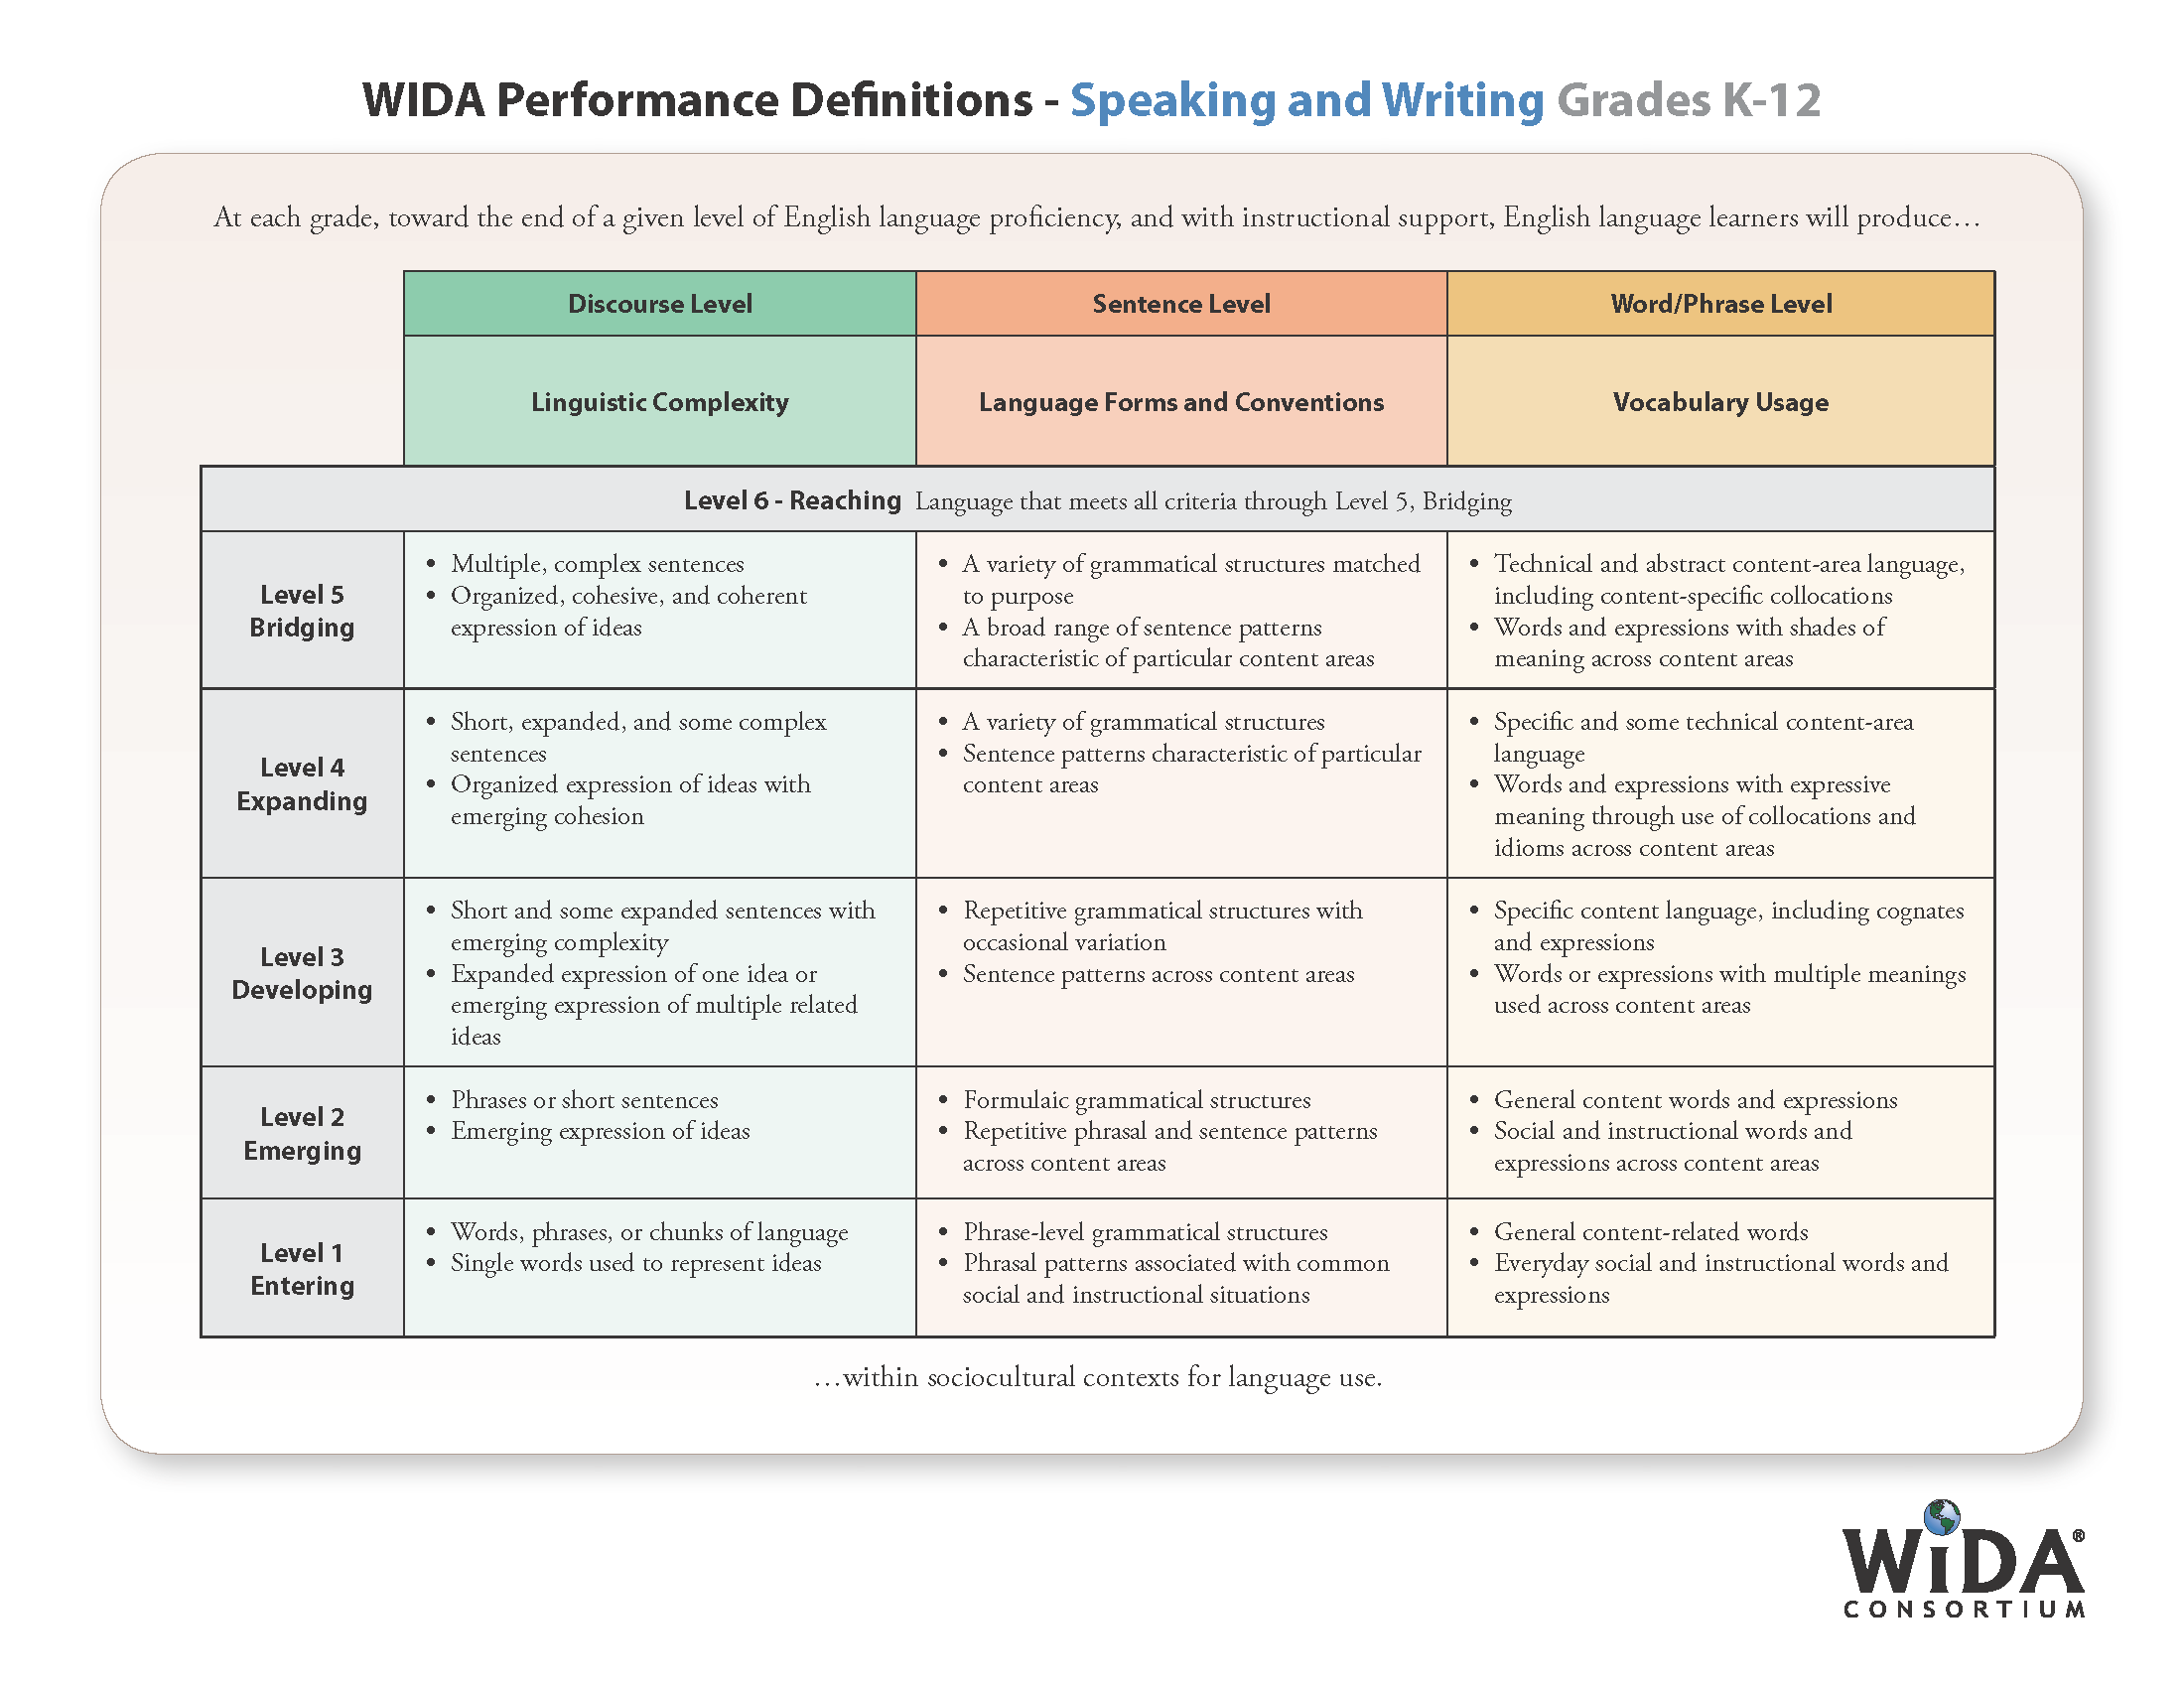 WIDA Performance Definitions - Speaking and Writing Grades K-12